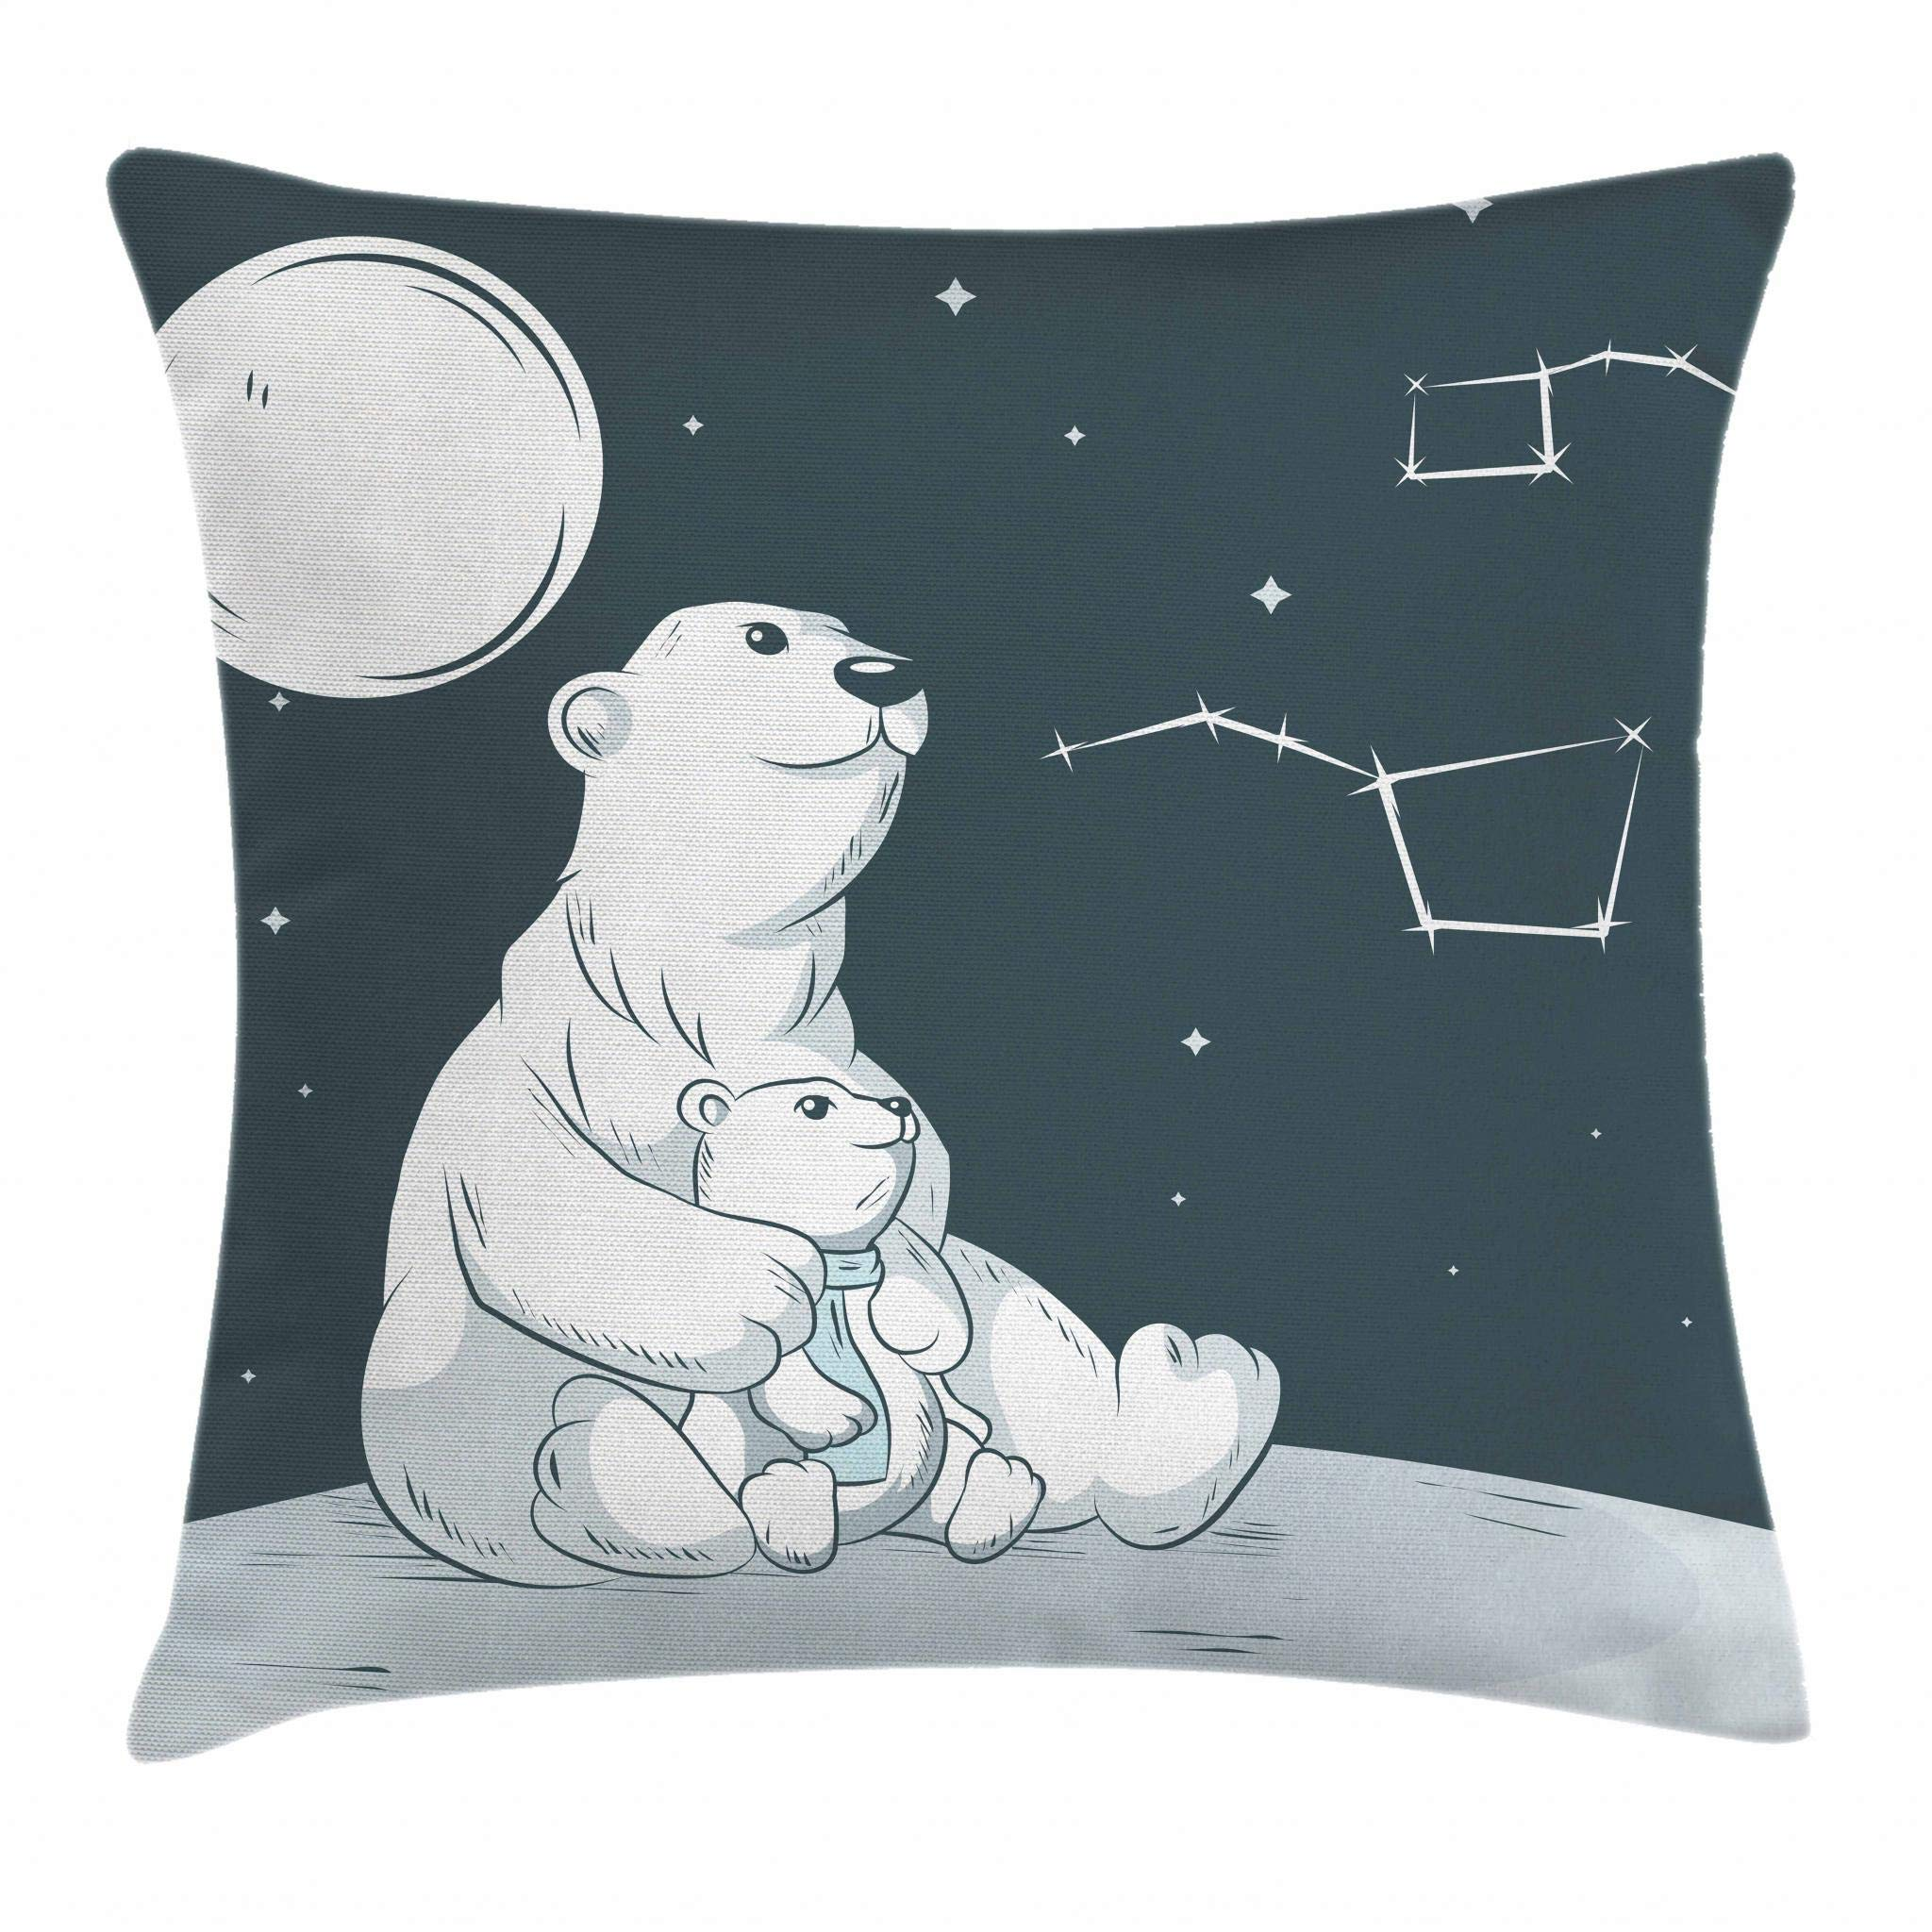 Ambesonne Starry Night Throw Pillow Cushion Cover, Mother Polar Bear Her Son Looking Stars Constellation Illustration, Decorative Square Accent Pillow Case, 18 X 18 Inches, White Blue Vermilion